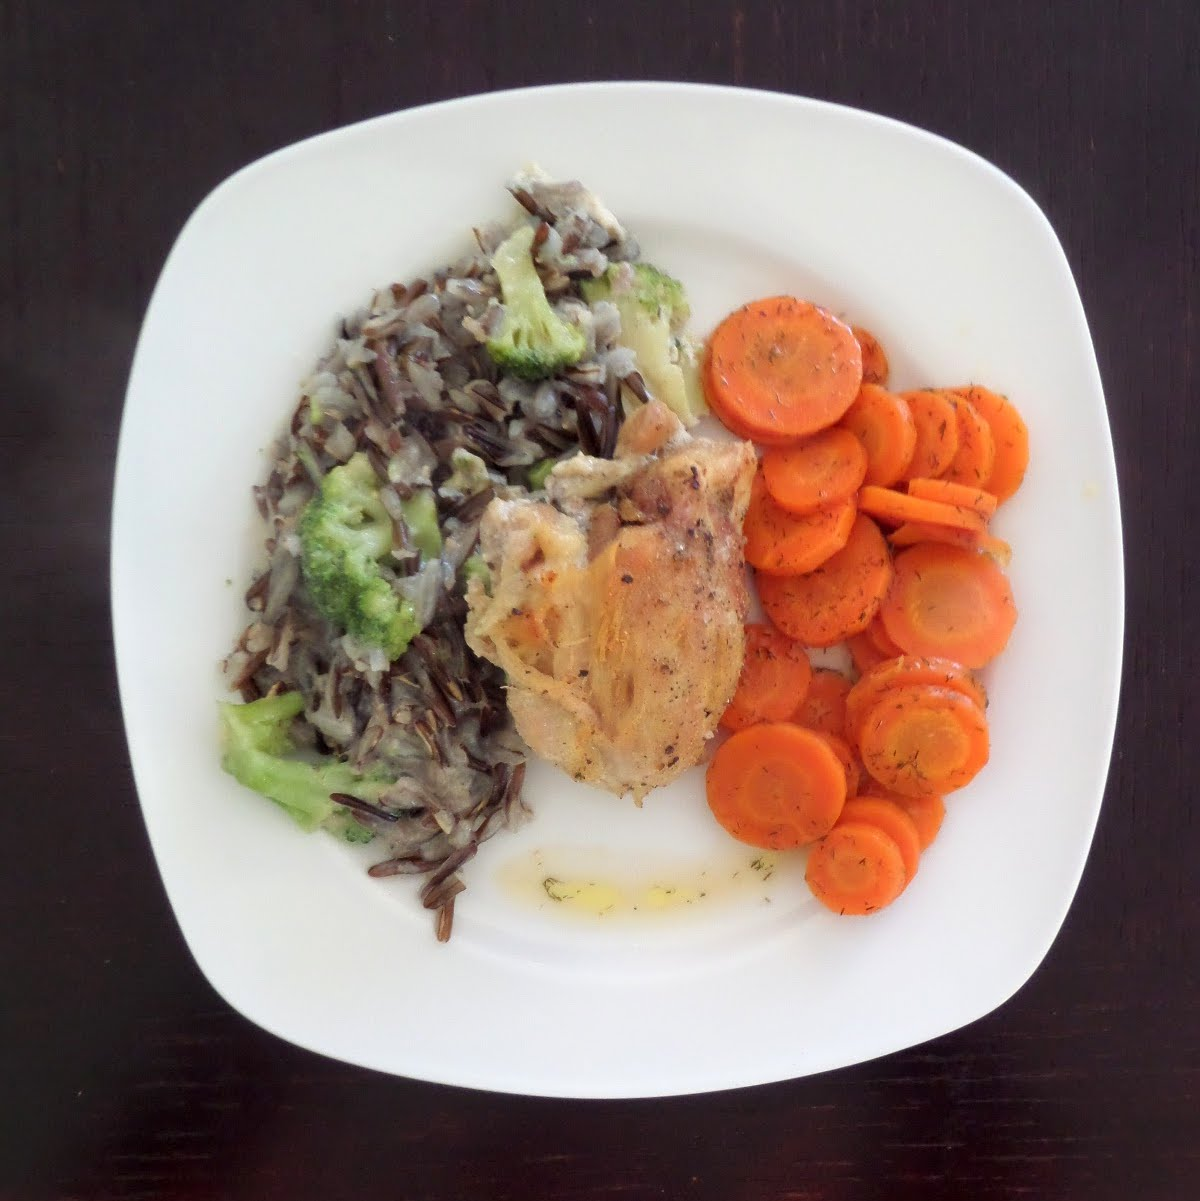 Chicken and Wild Rice Hotdish:  A delicious and simple hotdish of chicken and wild rice flavored with cream of mushroom soup.